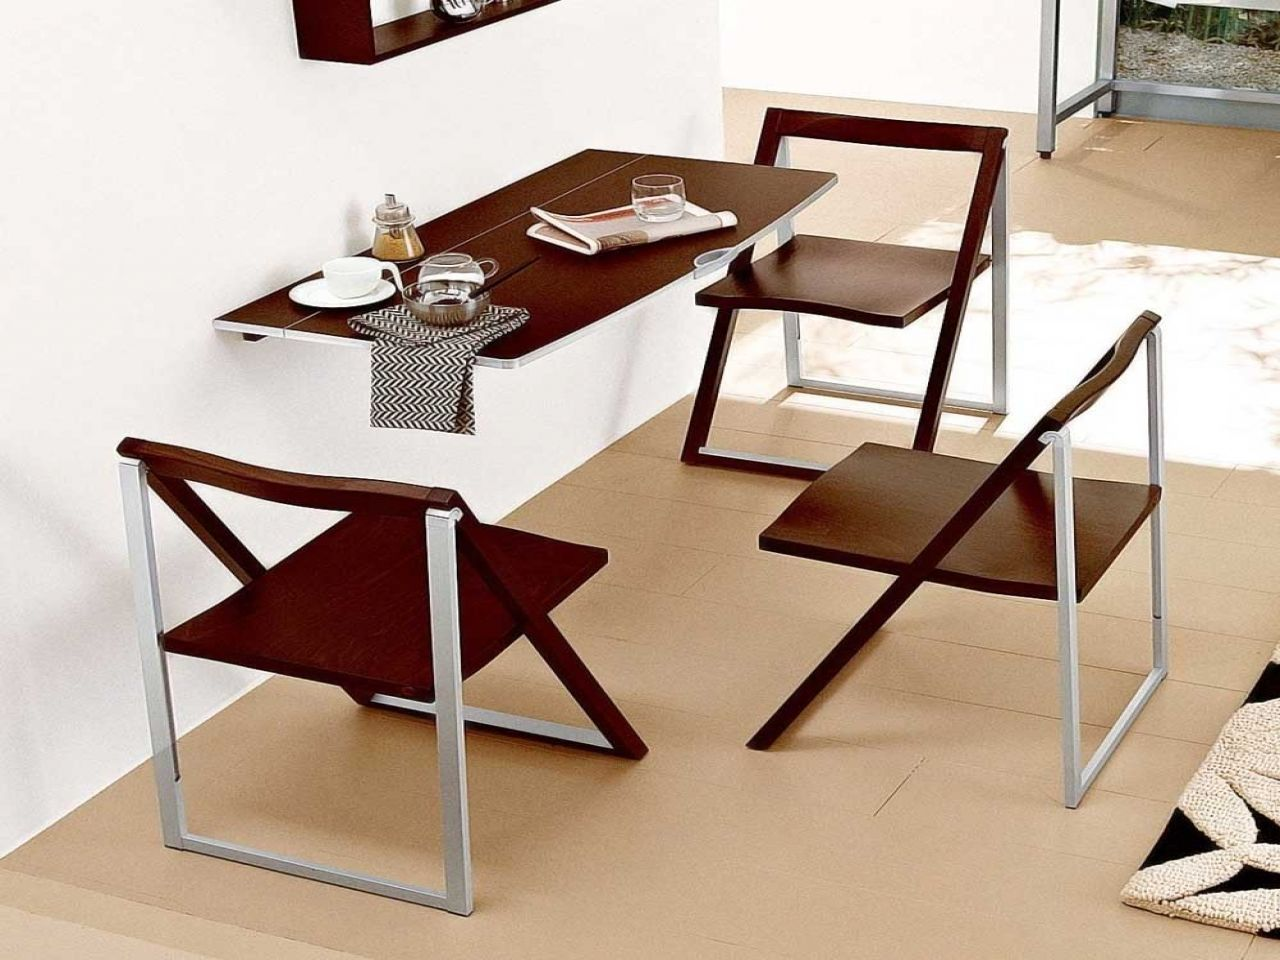 Wall Folding Dining Table Designs Sweet Idea 26 On Home Design Ideas